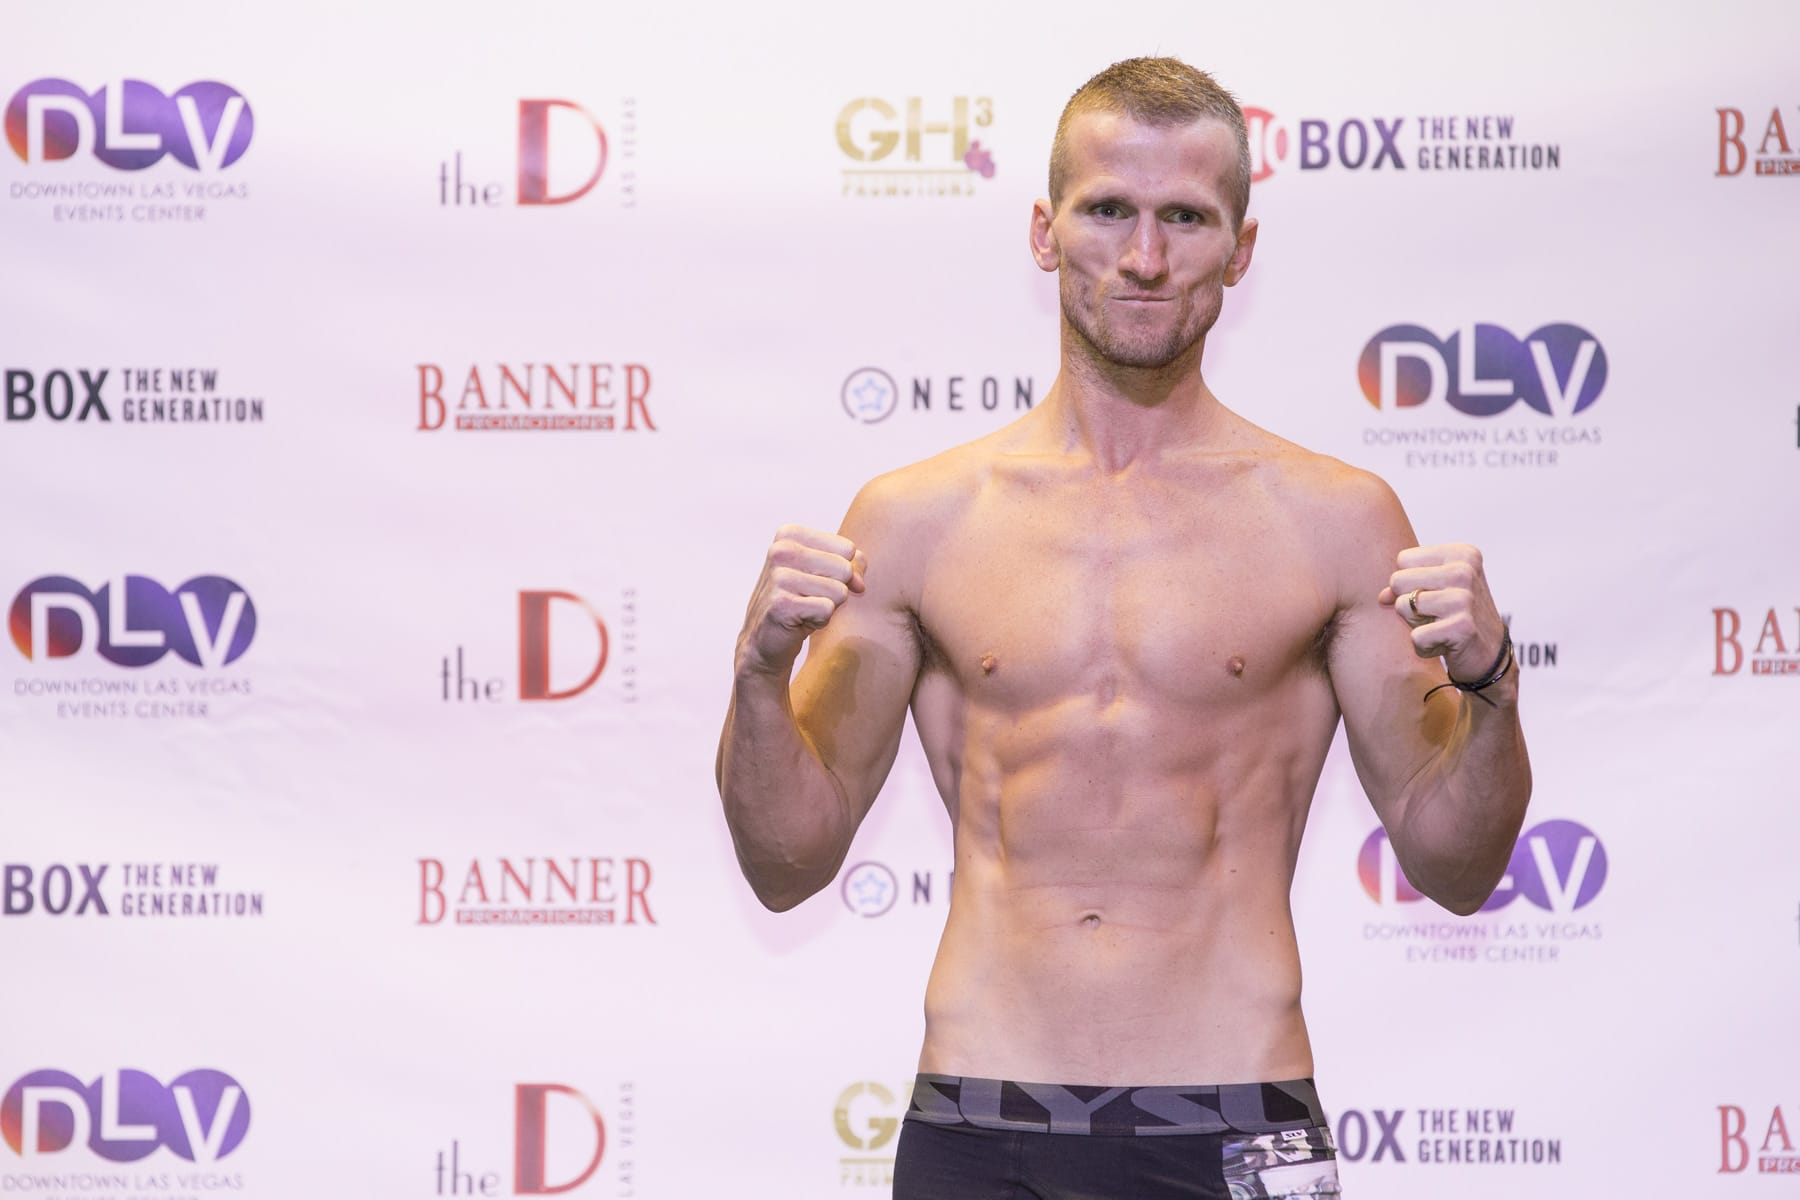 Les Sherrington discusses past performances, motivation to continue fighting